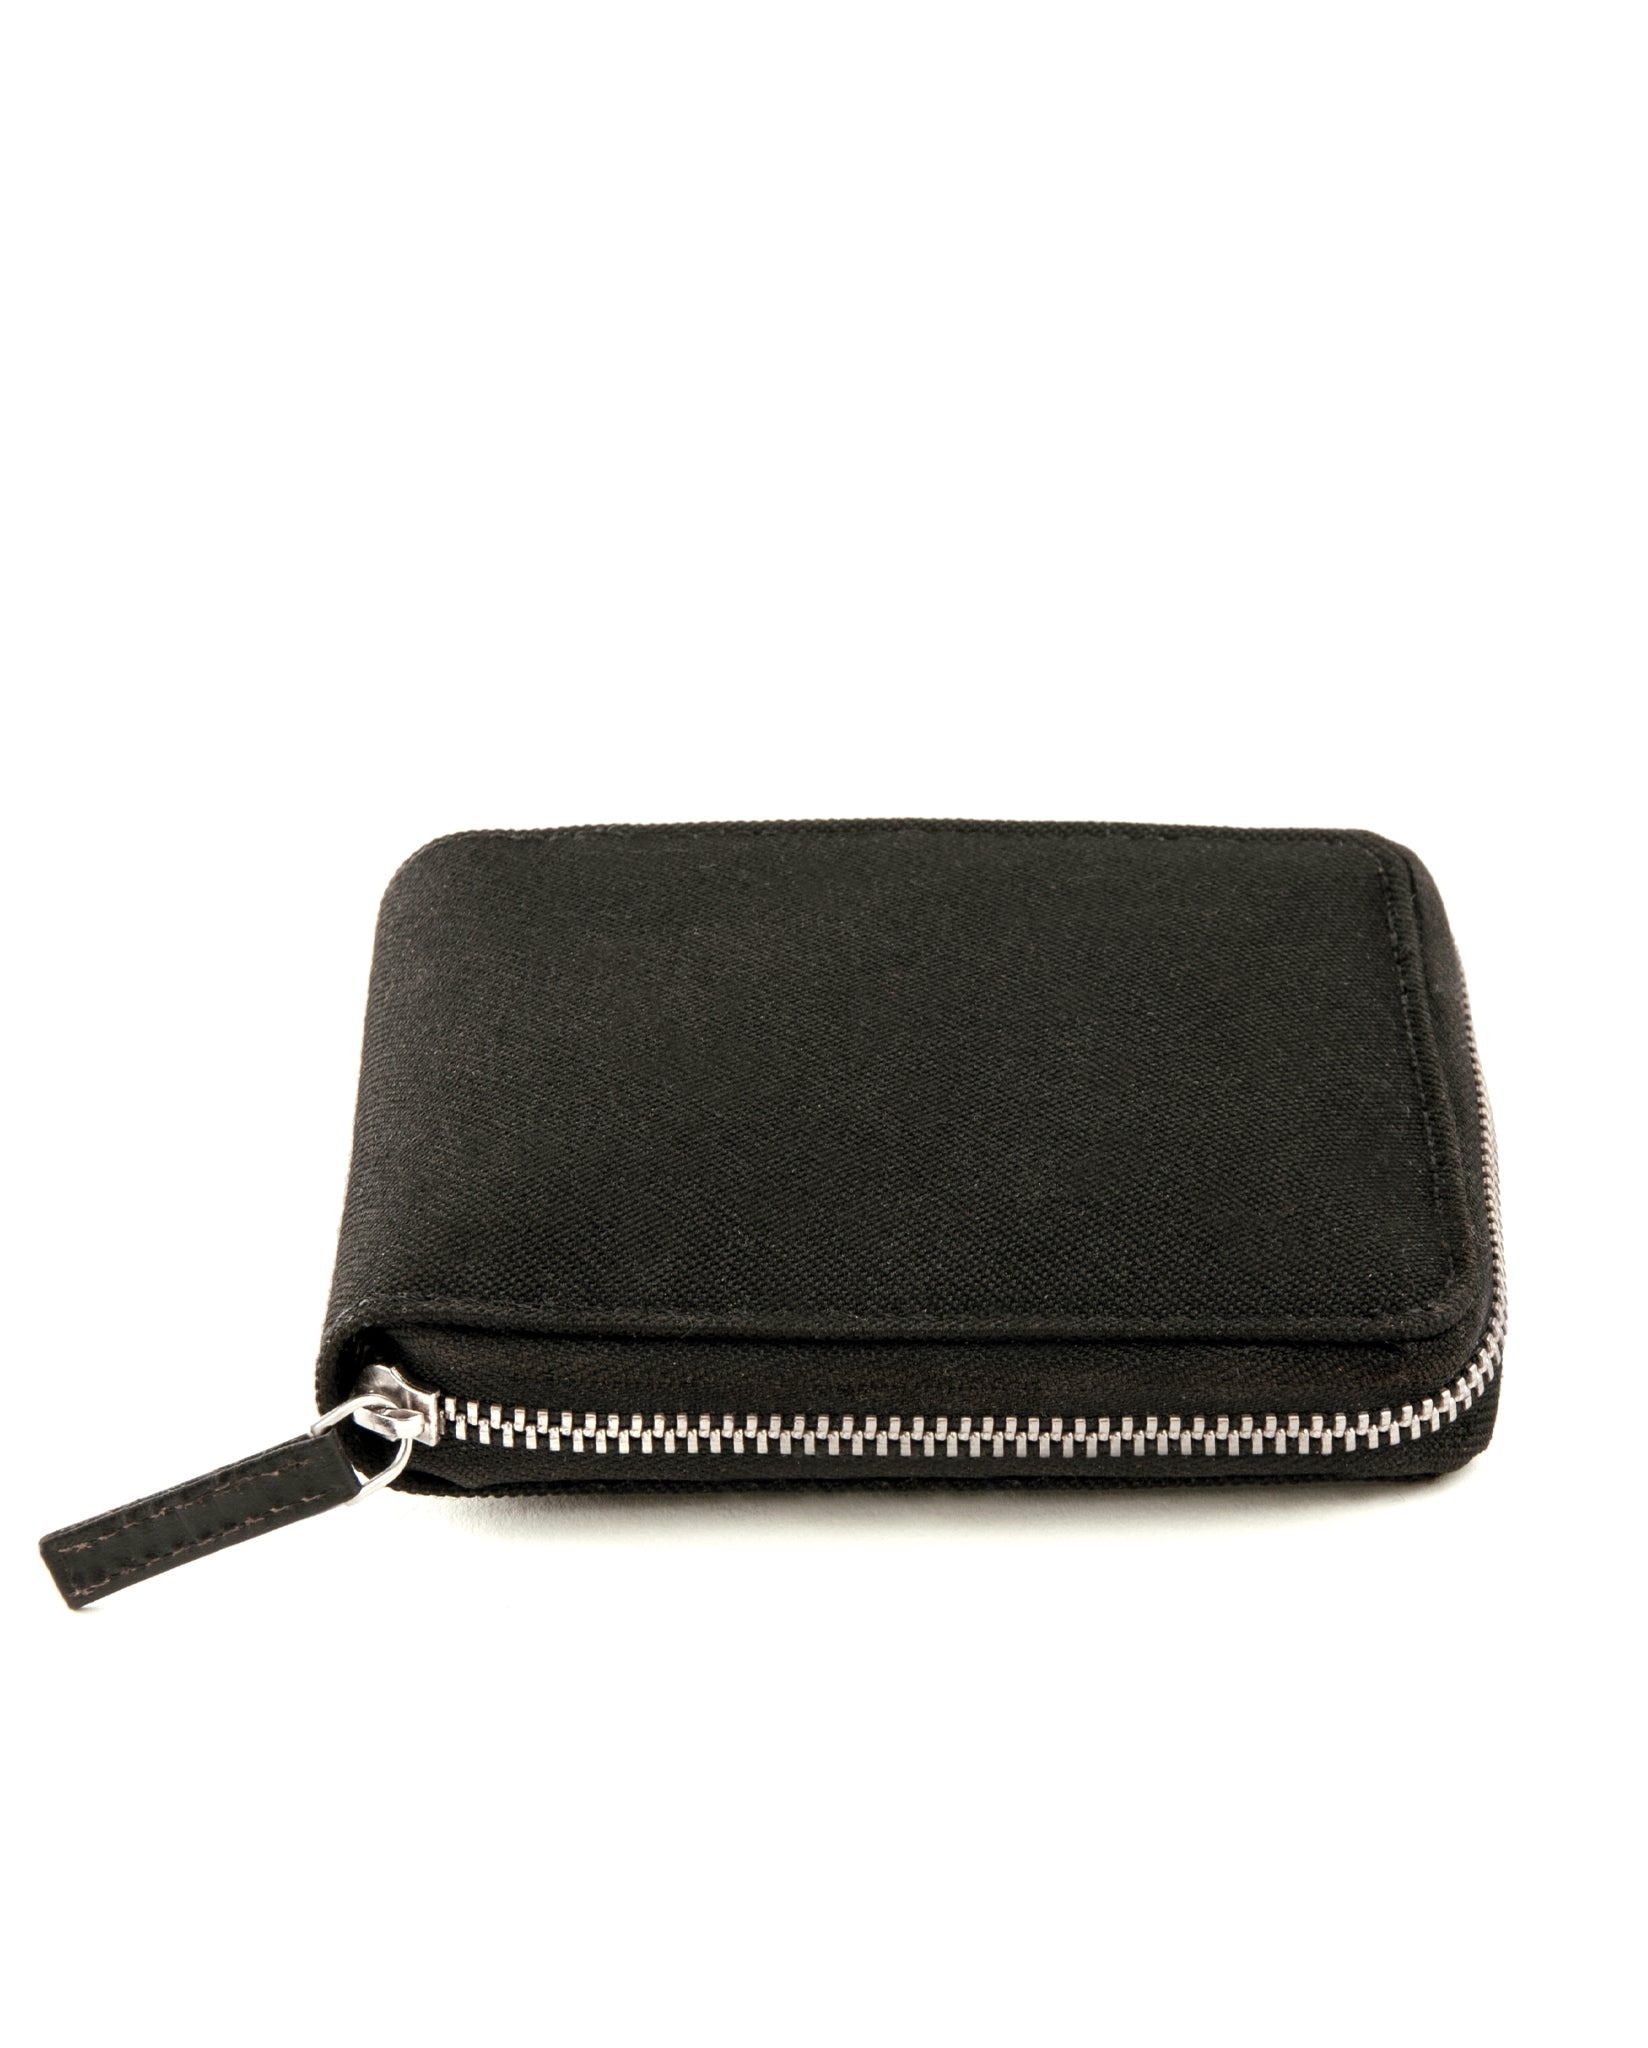 dothebag accessories wallet zip M